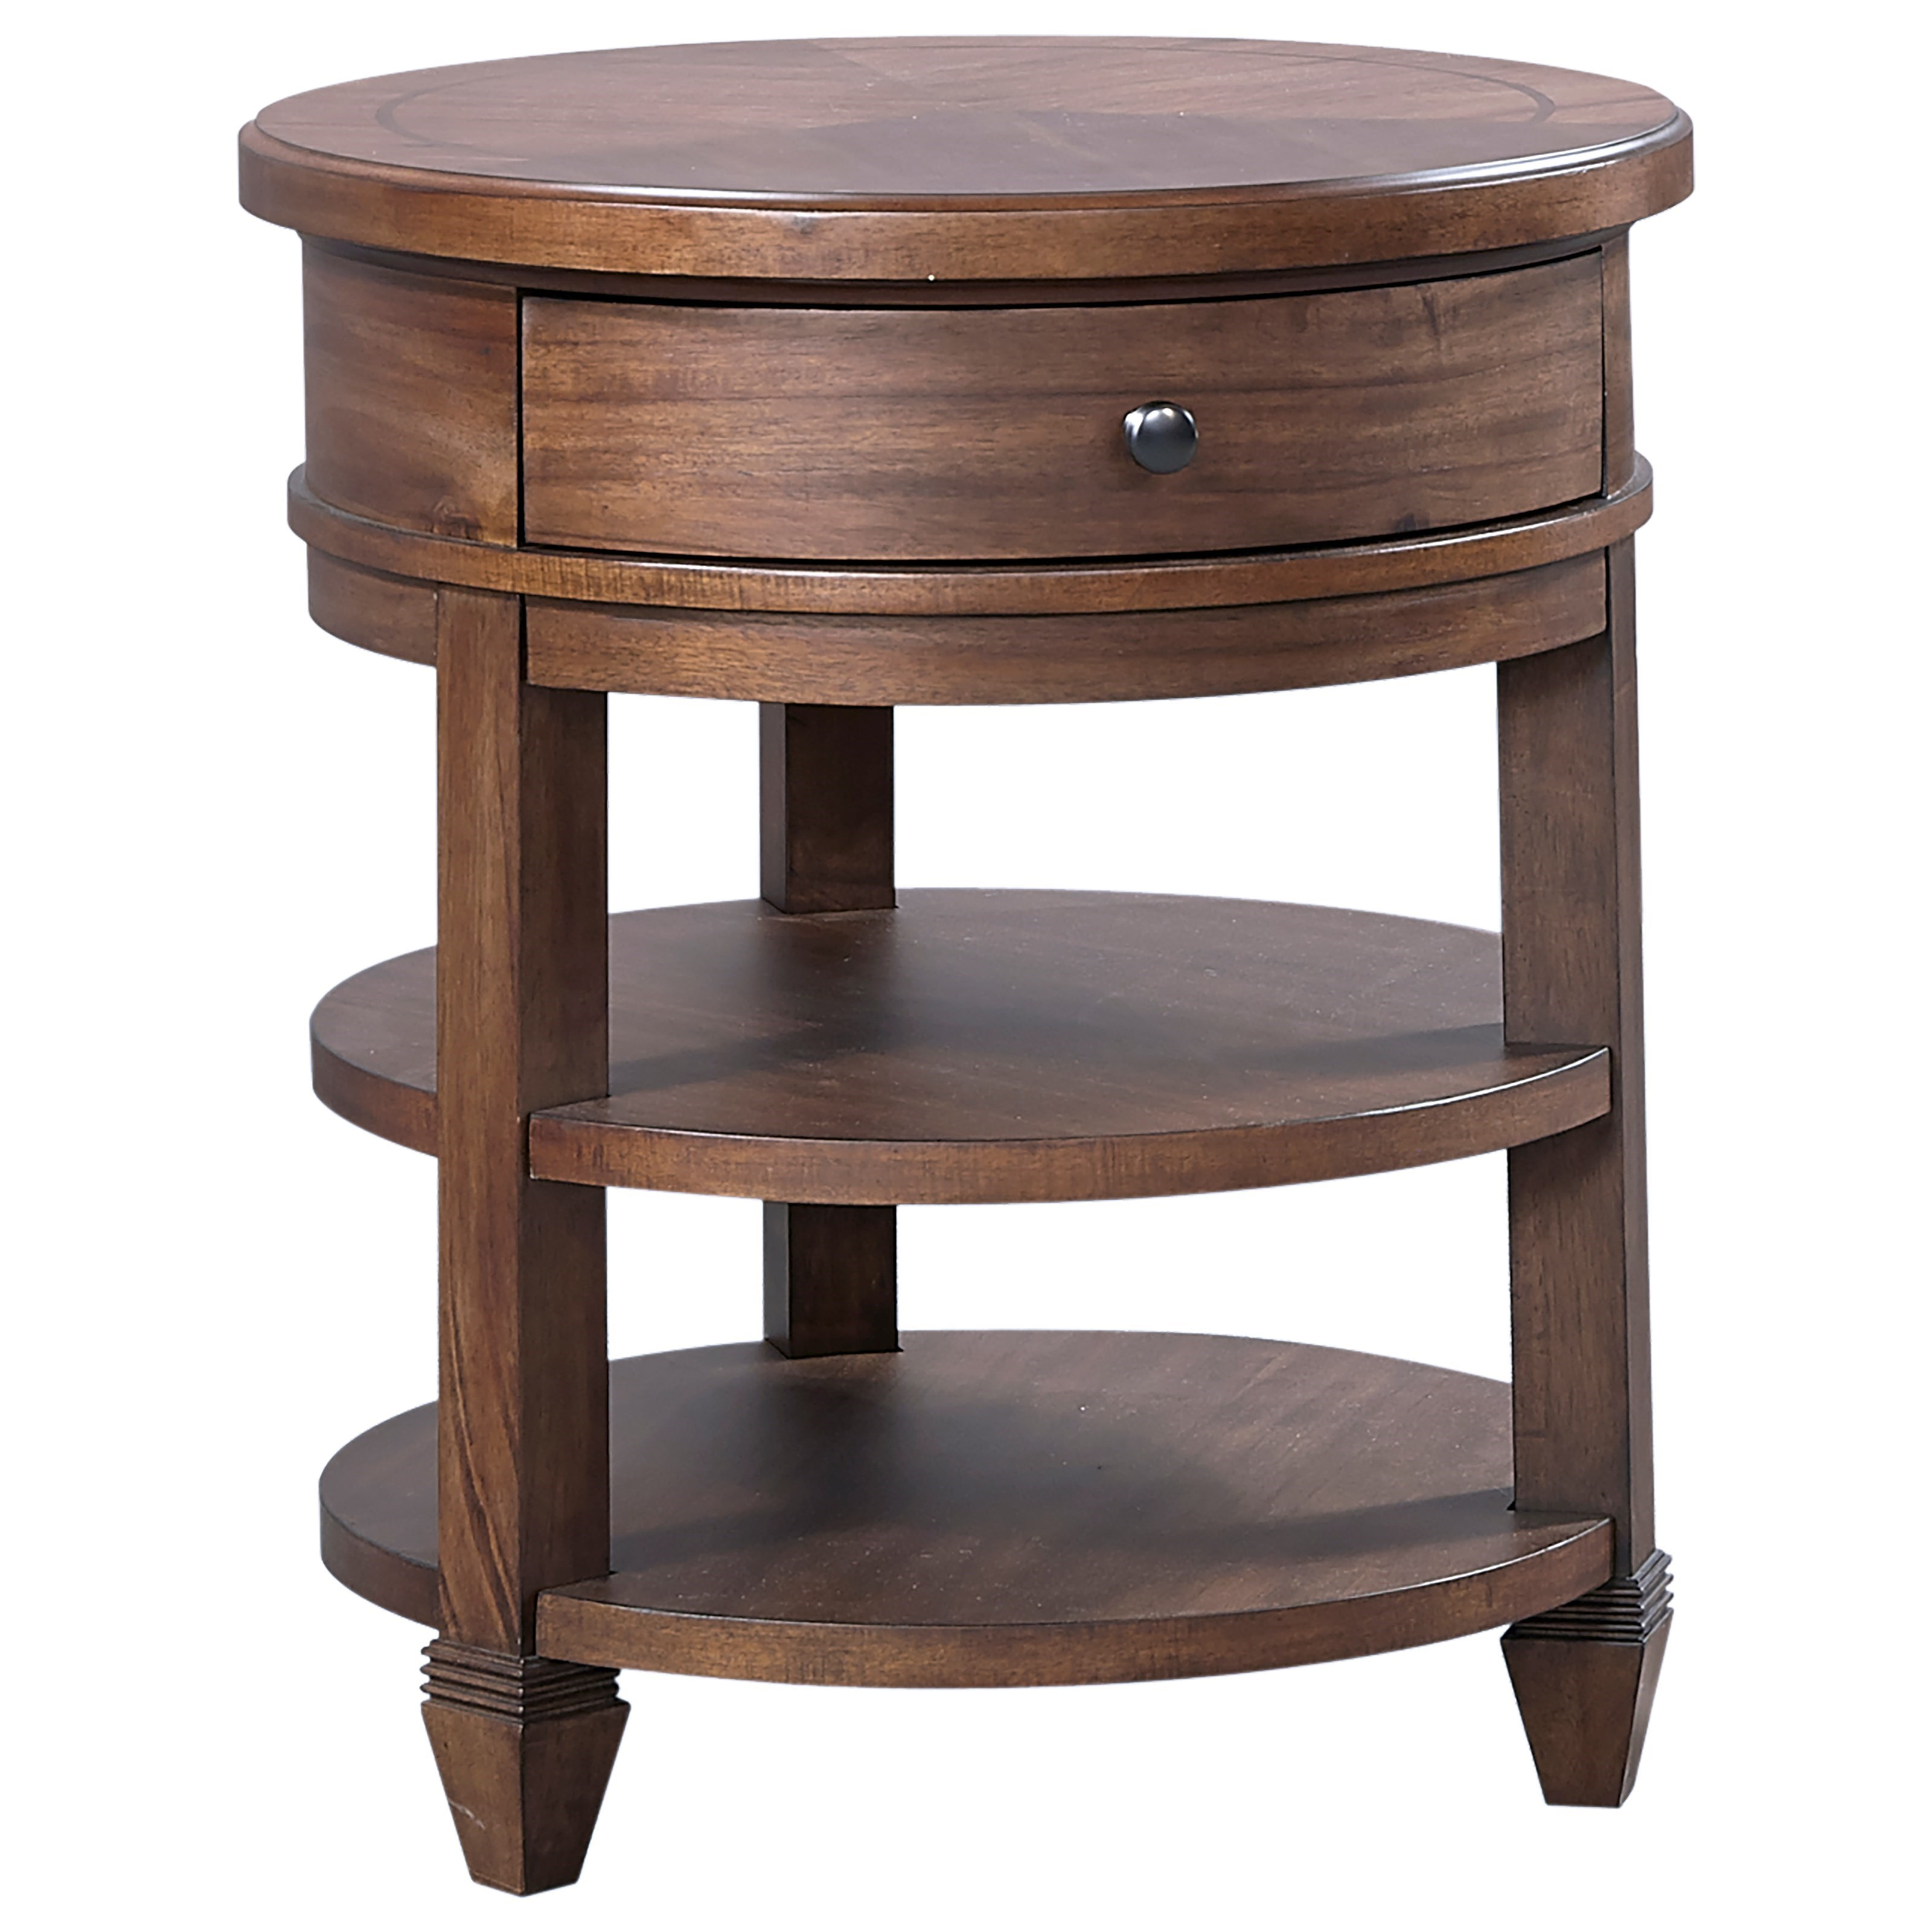 Thornton Round Nightstand by Aspenhome at Baer's Furniture